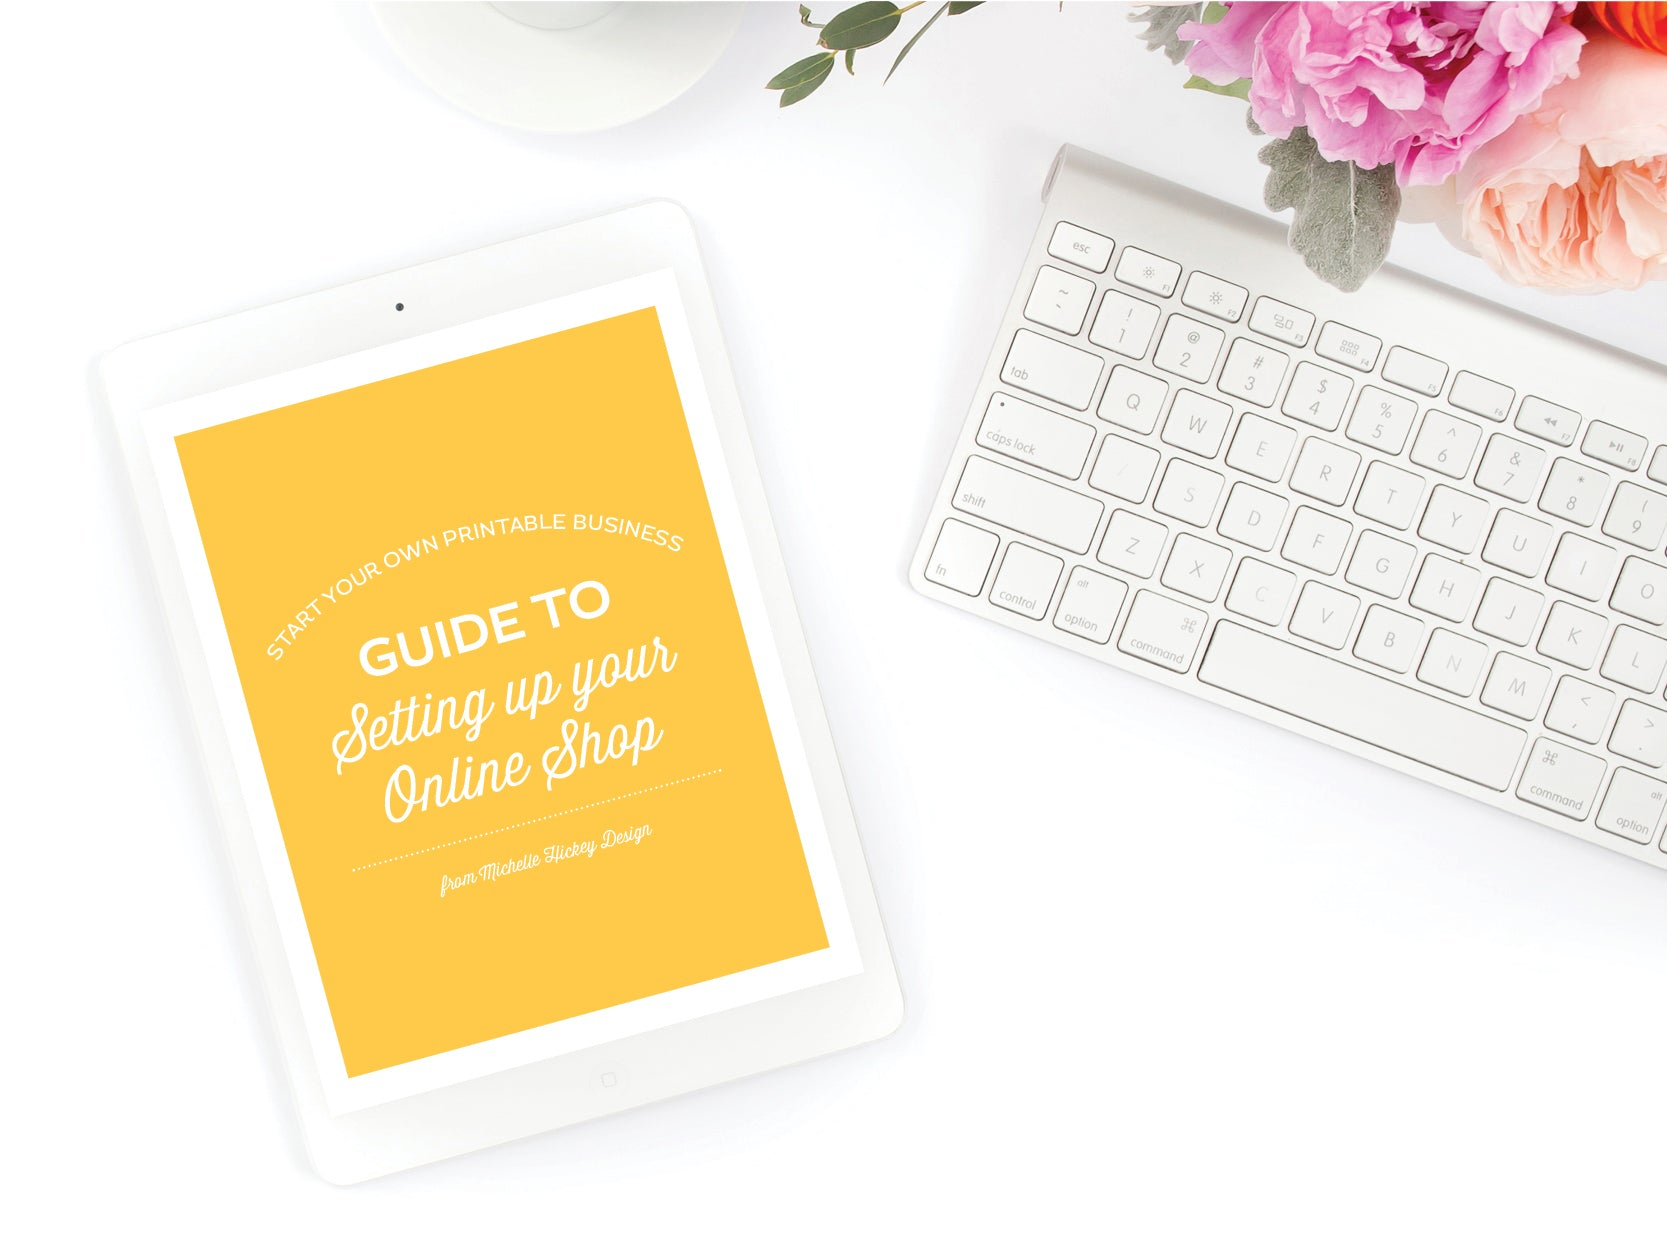 Guide to Setting up an Online Shop